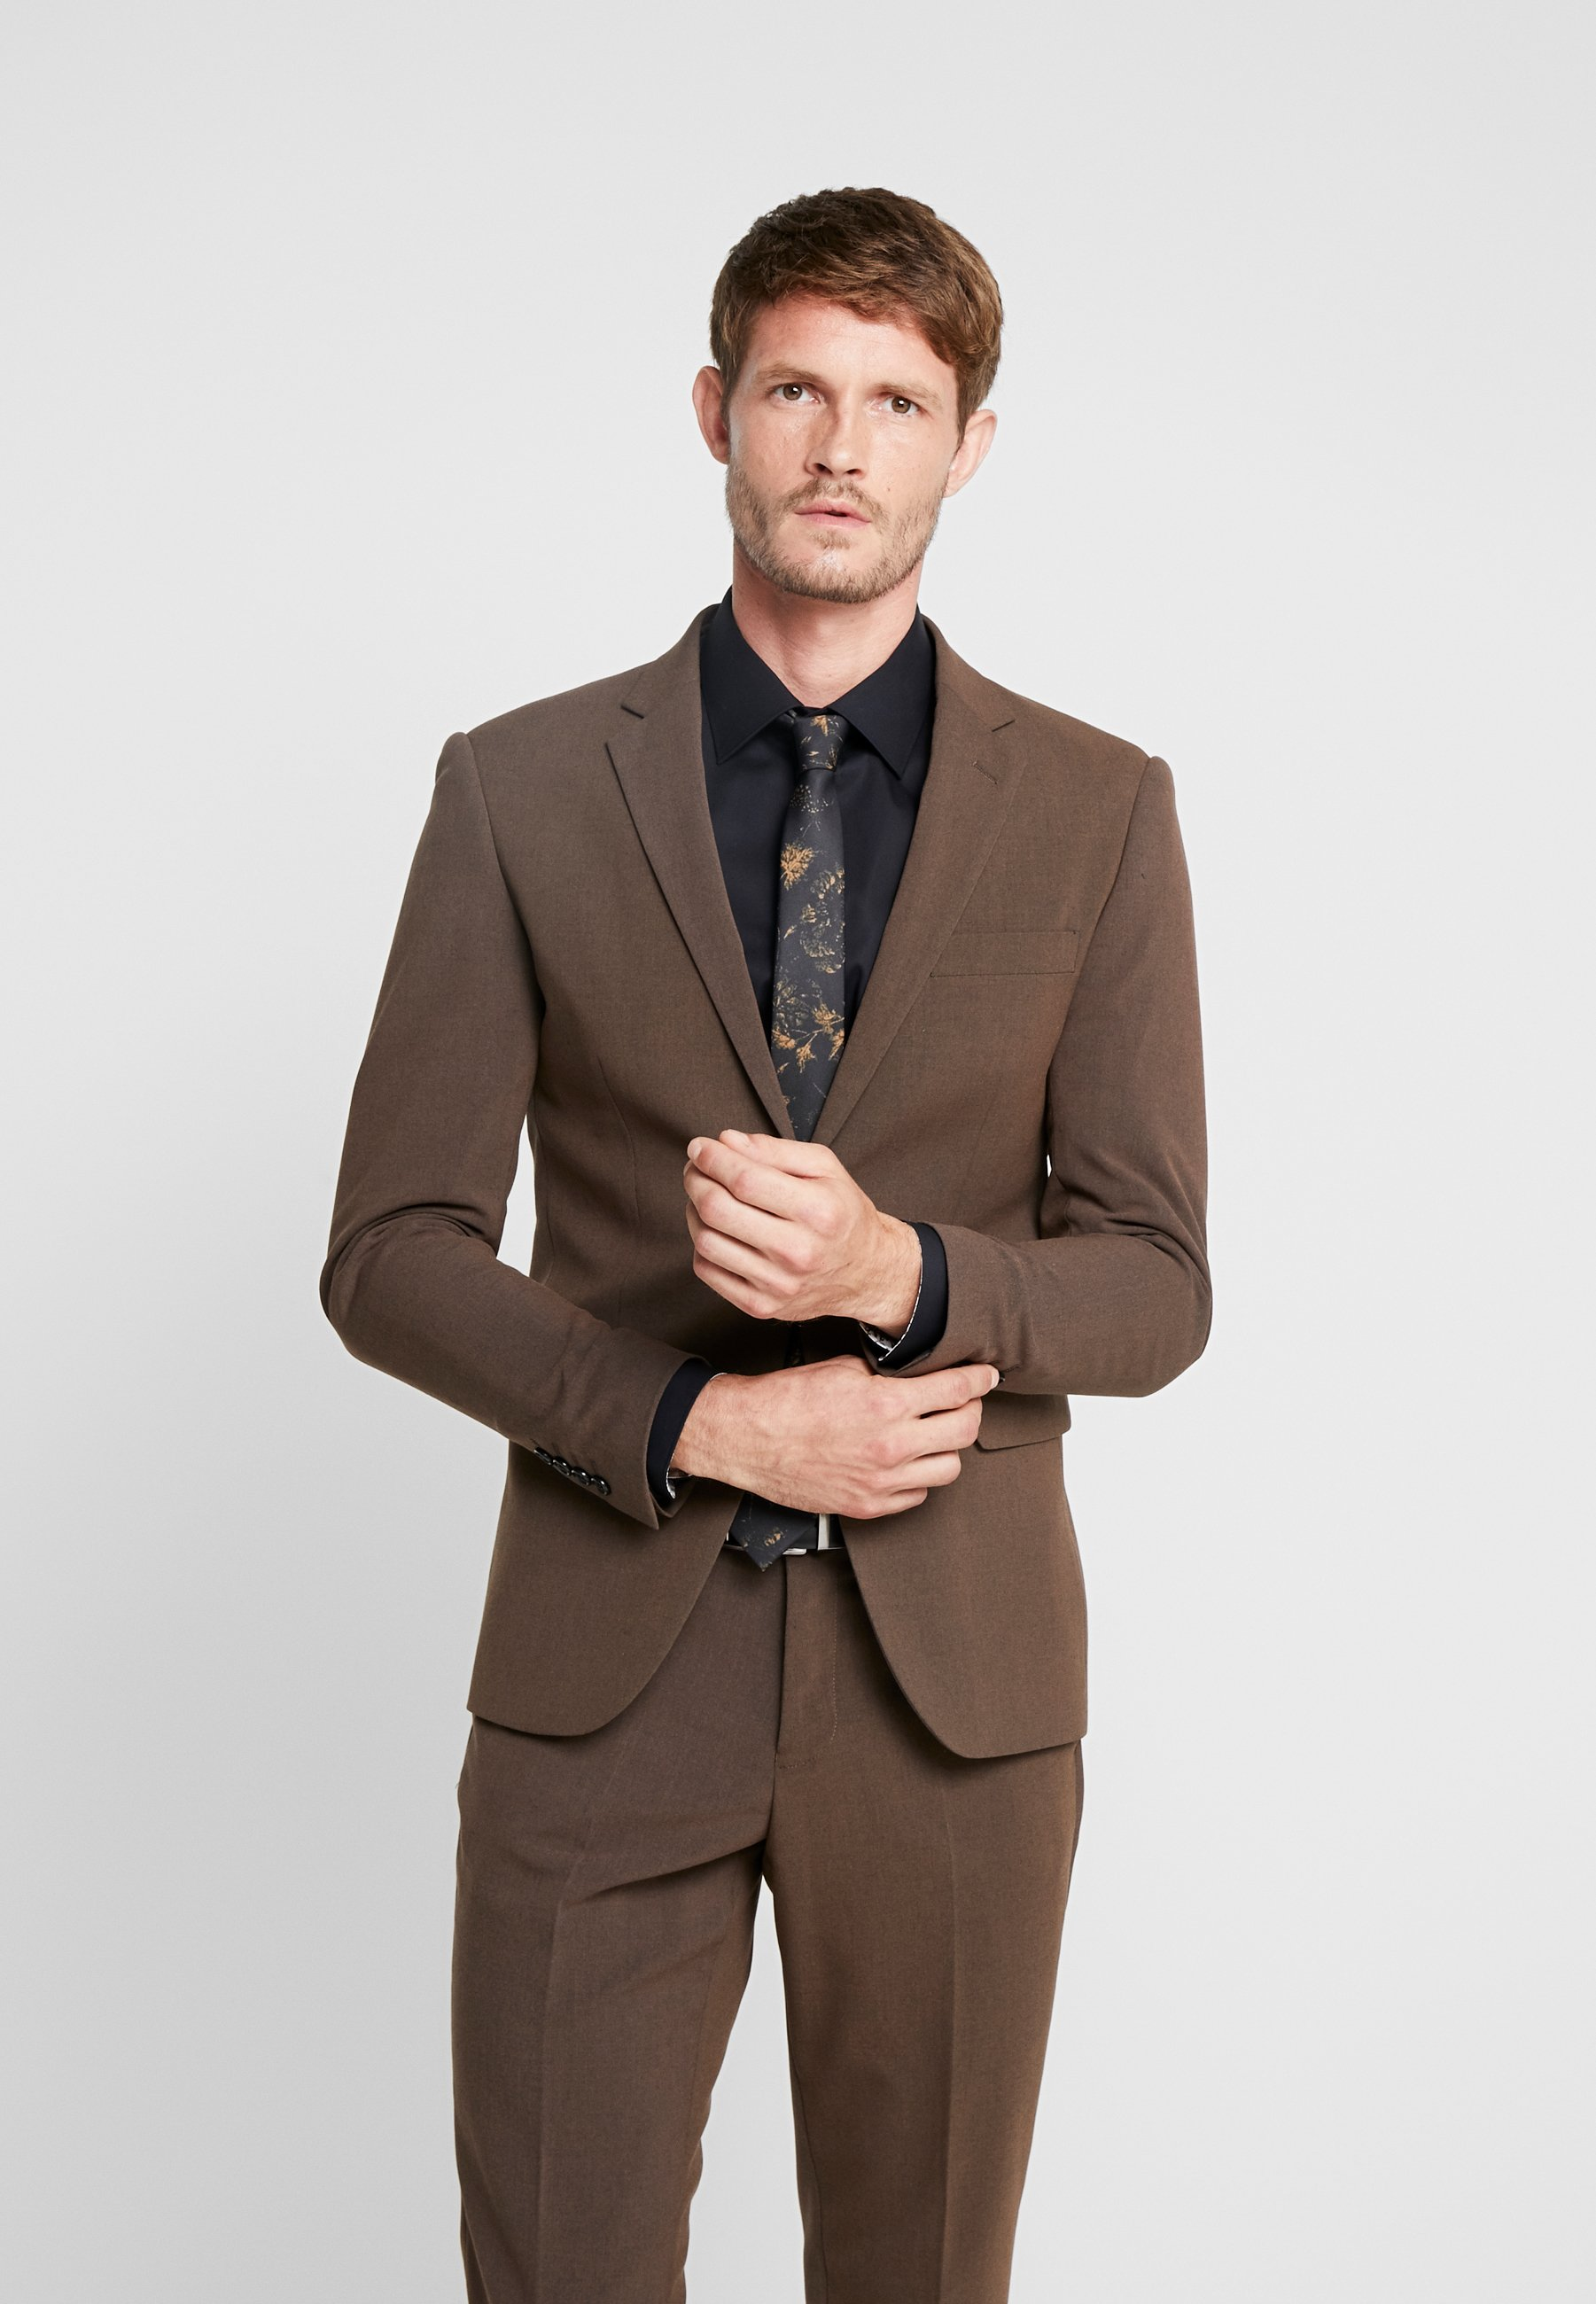 Lindbergh Plain Mens Suit - Dress Brown Melange/brun